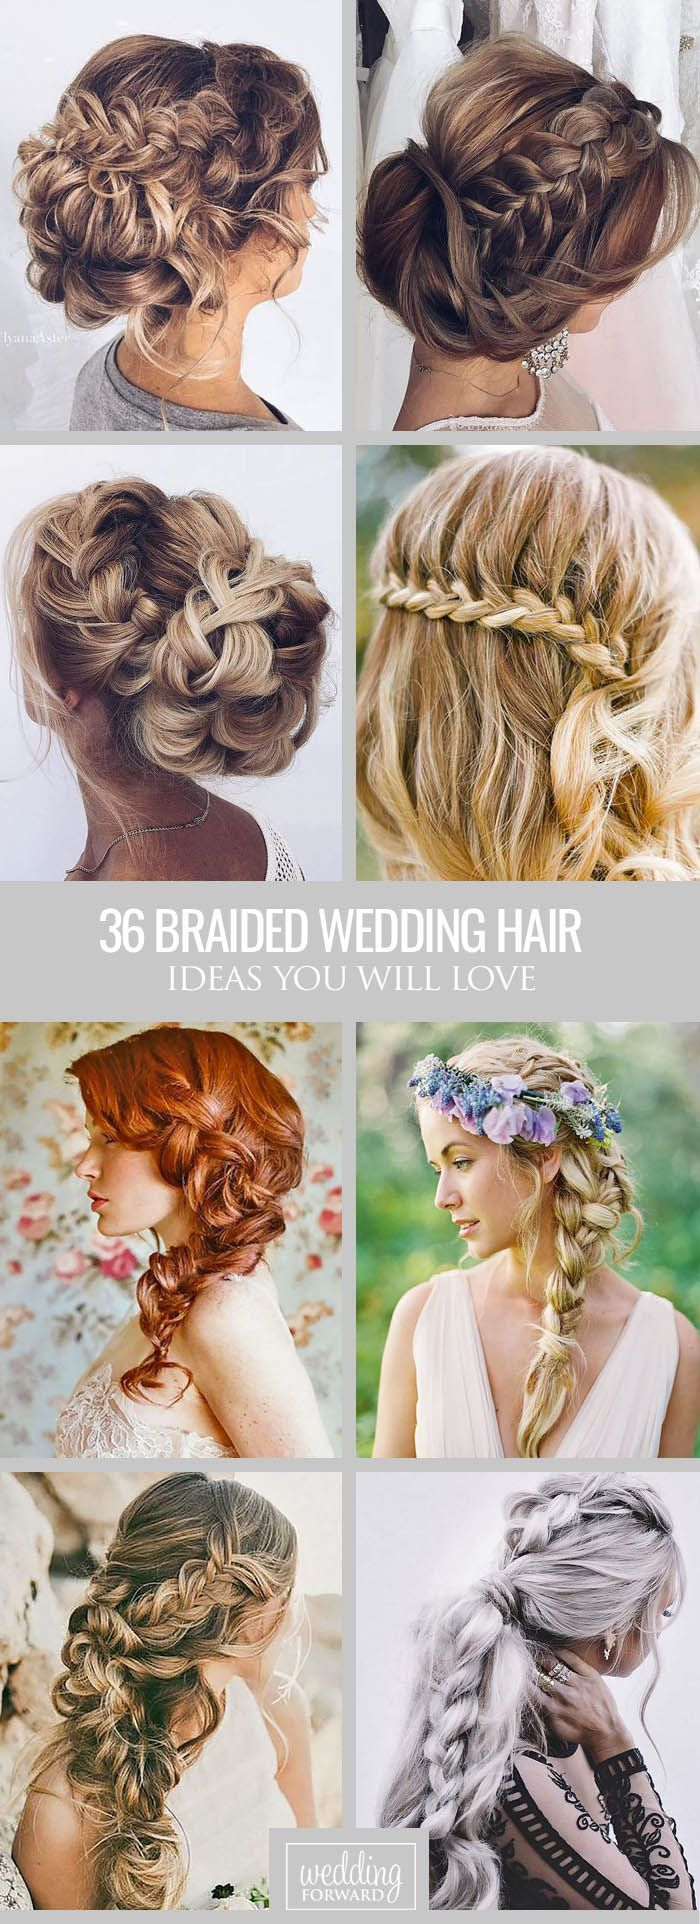 awesome 36 Braided Wedding Hair Ideas You Will Love ❤ From soft waves to gorgeous updo...